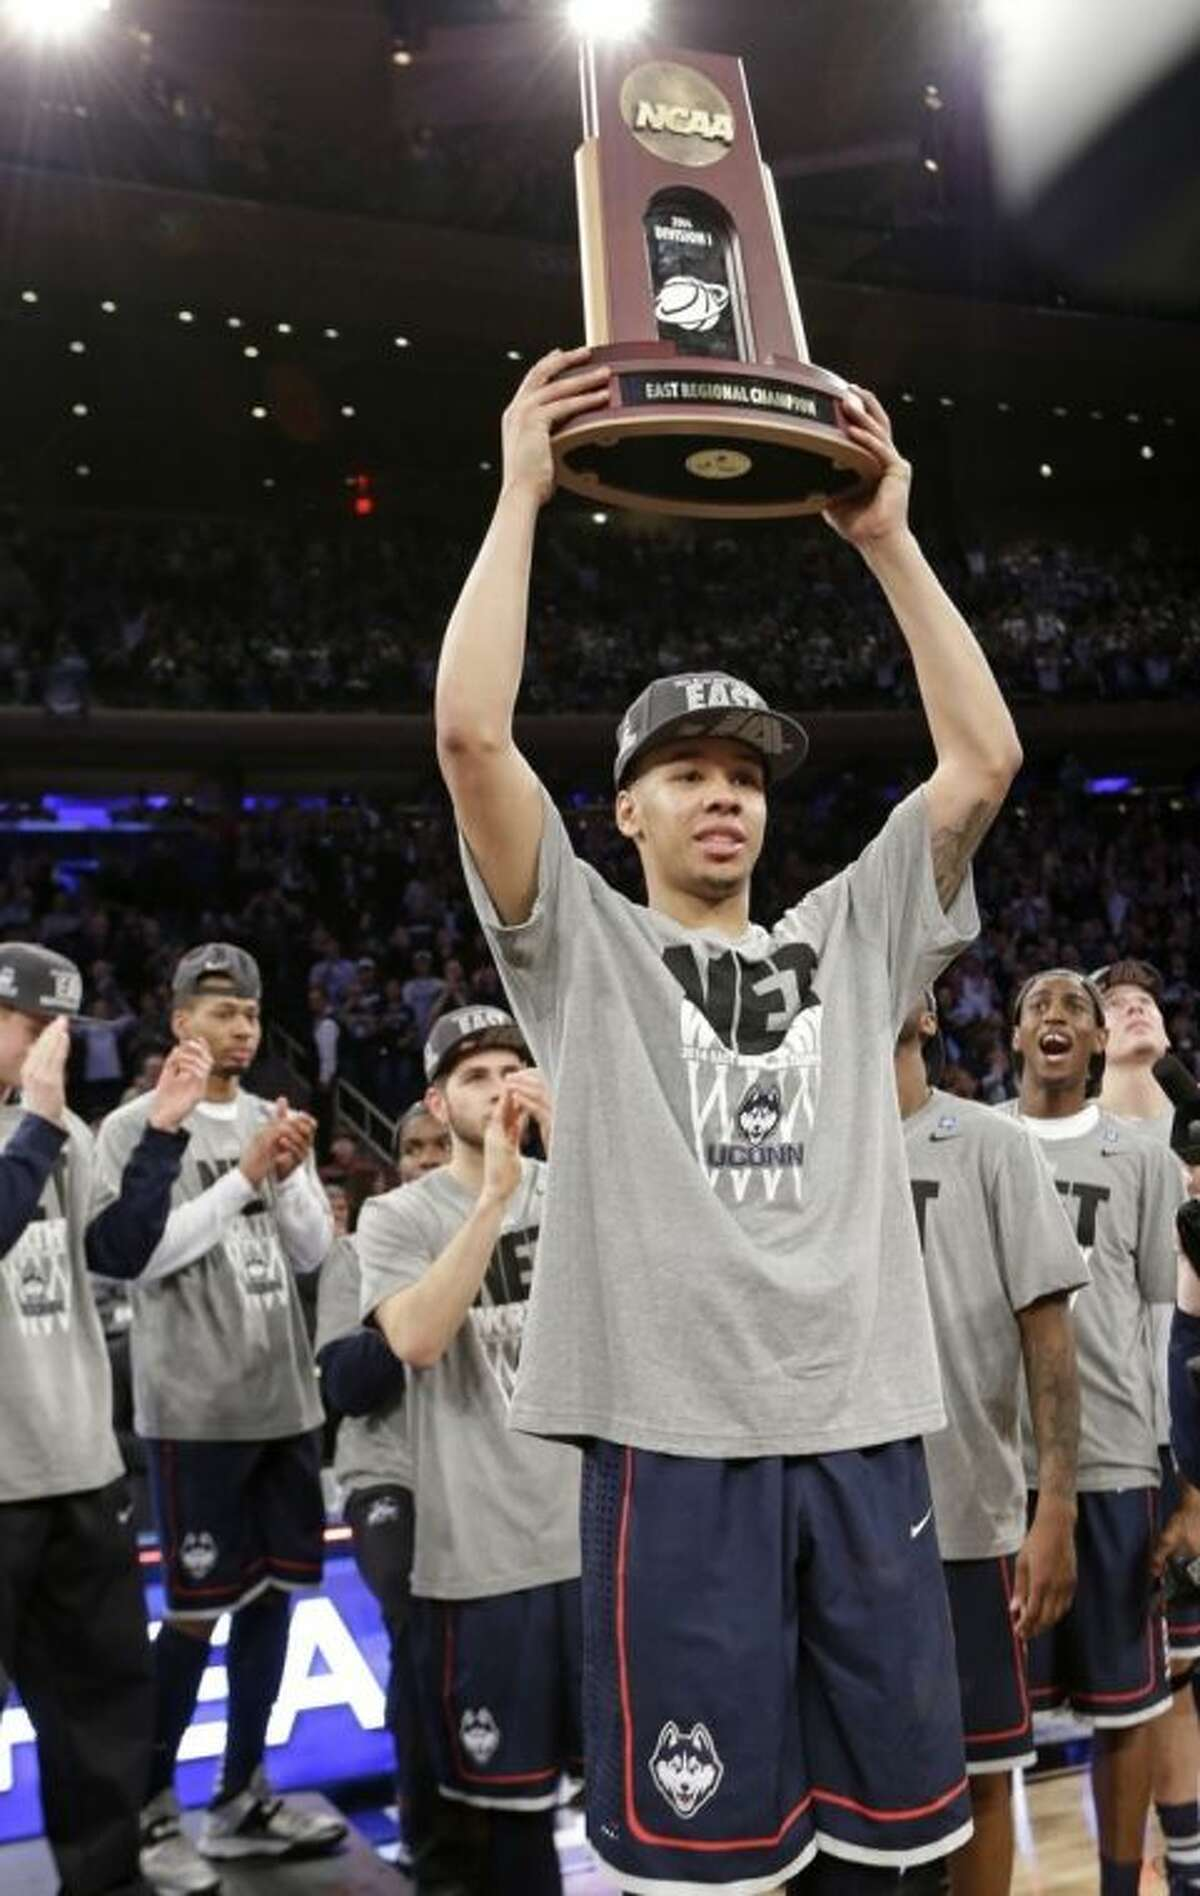 Connecticut's Shabazz Napier holds the championship trophy after a regional final against Michigan State in the NCAA college basketball tournament Sunday, March 30, 2014, in New York. Connecticut won the game 60-54. (AP Photo/Frank Franklin II)